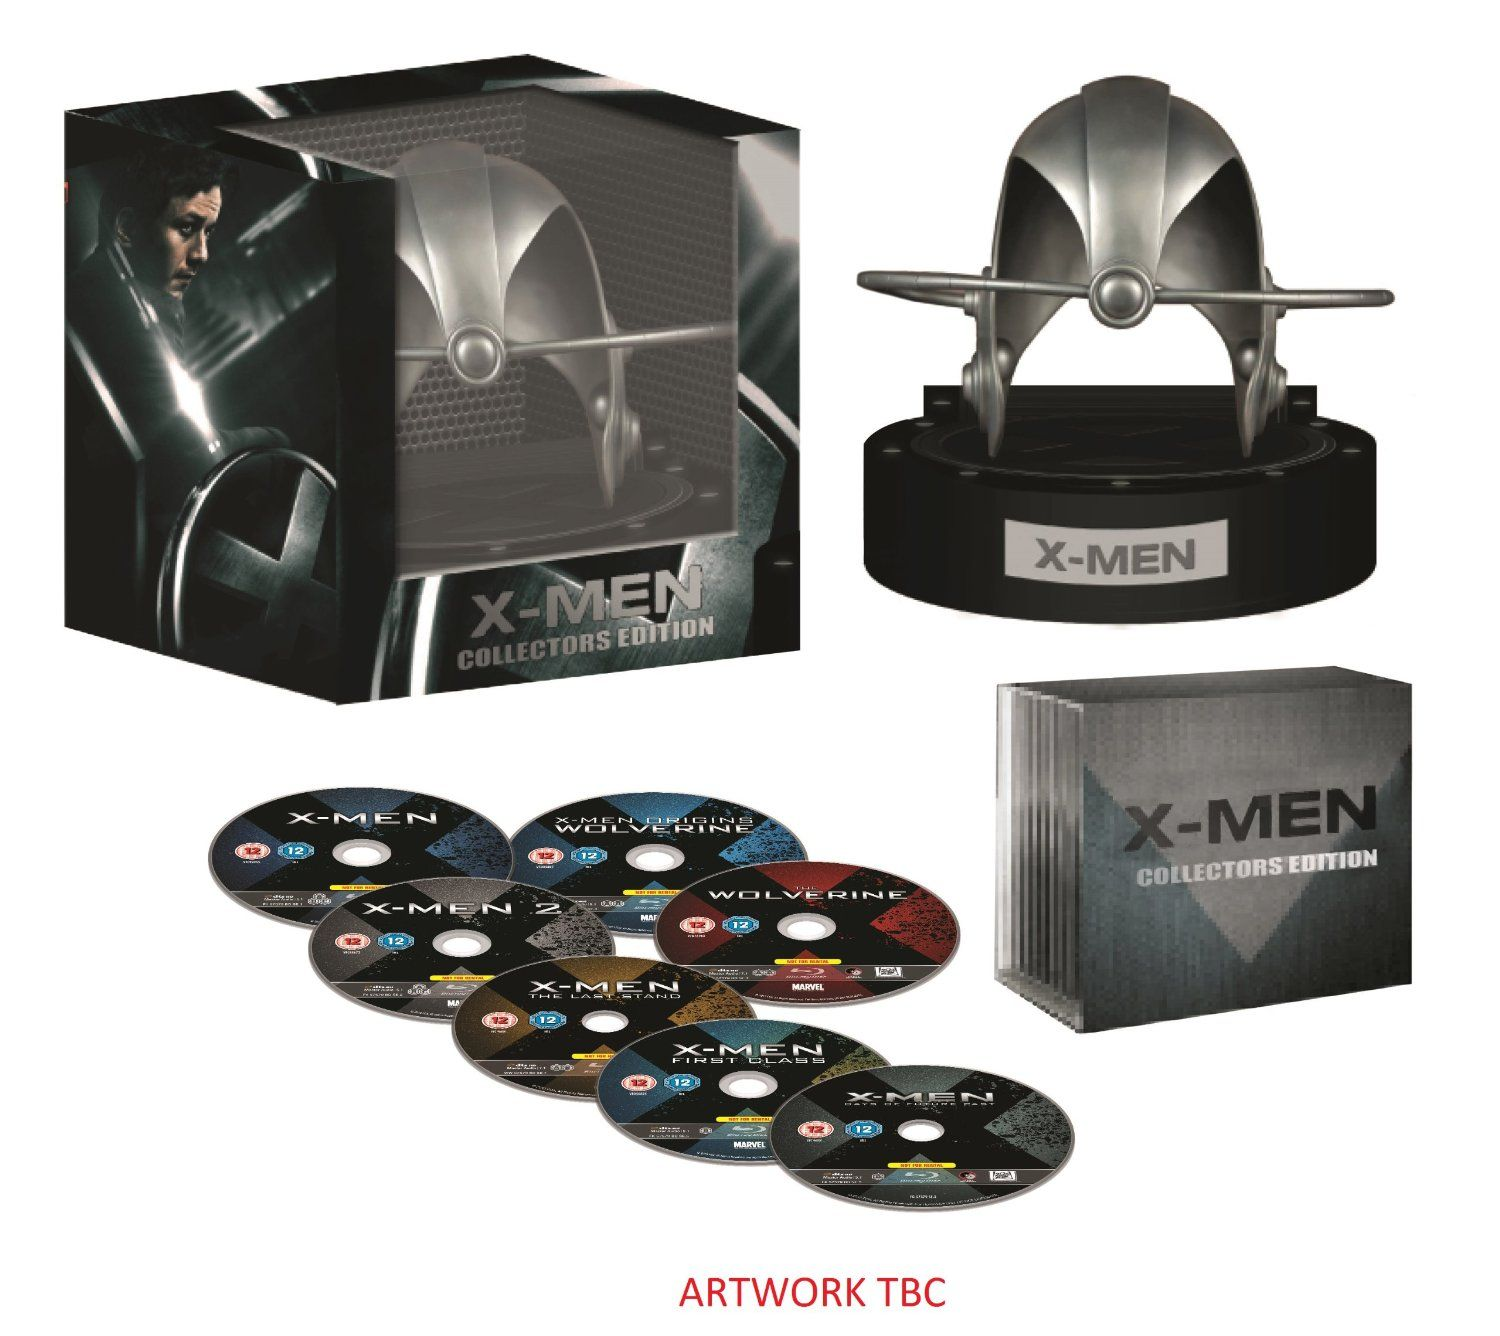 X Men Cerebro Helmet Complete Collection Incl Days Of Future Past Exclusive To Amazon Co Uk Blu Ray Amazon Co U Blu Ray Collection Boxset Tv Series To Watch